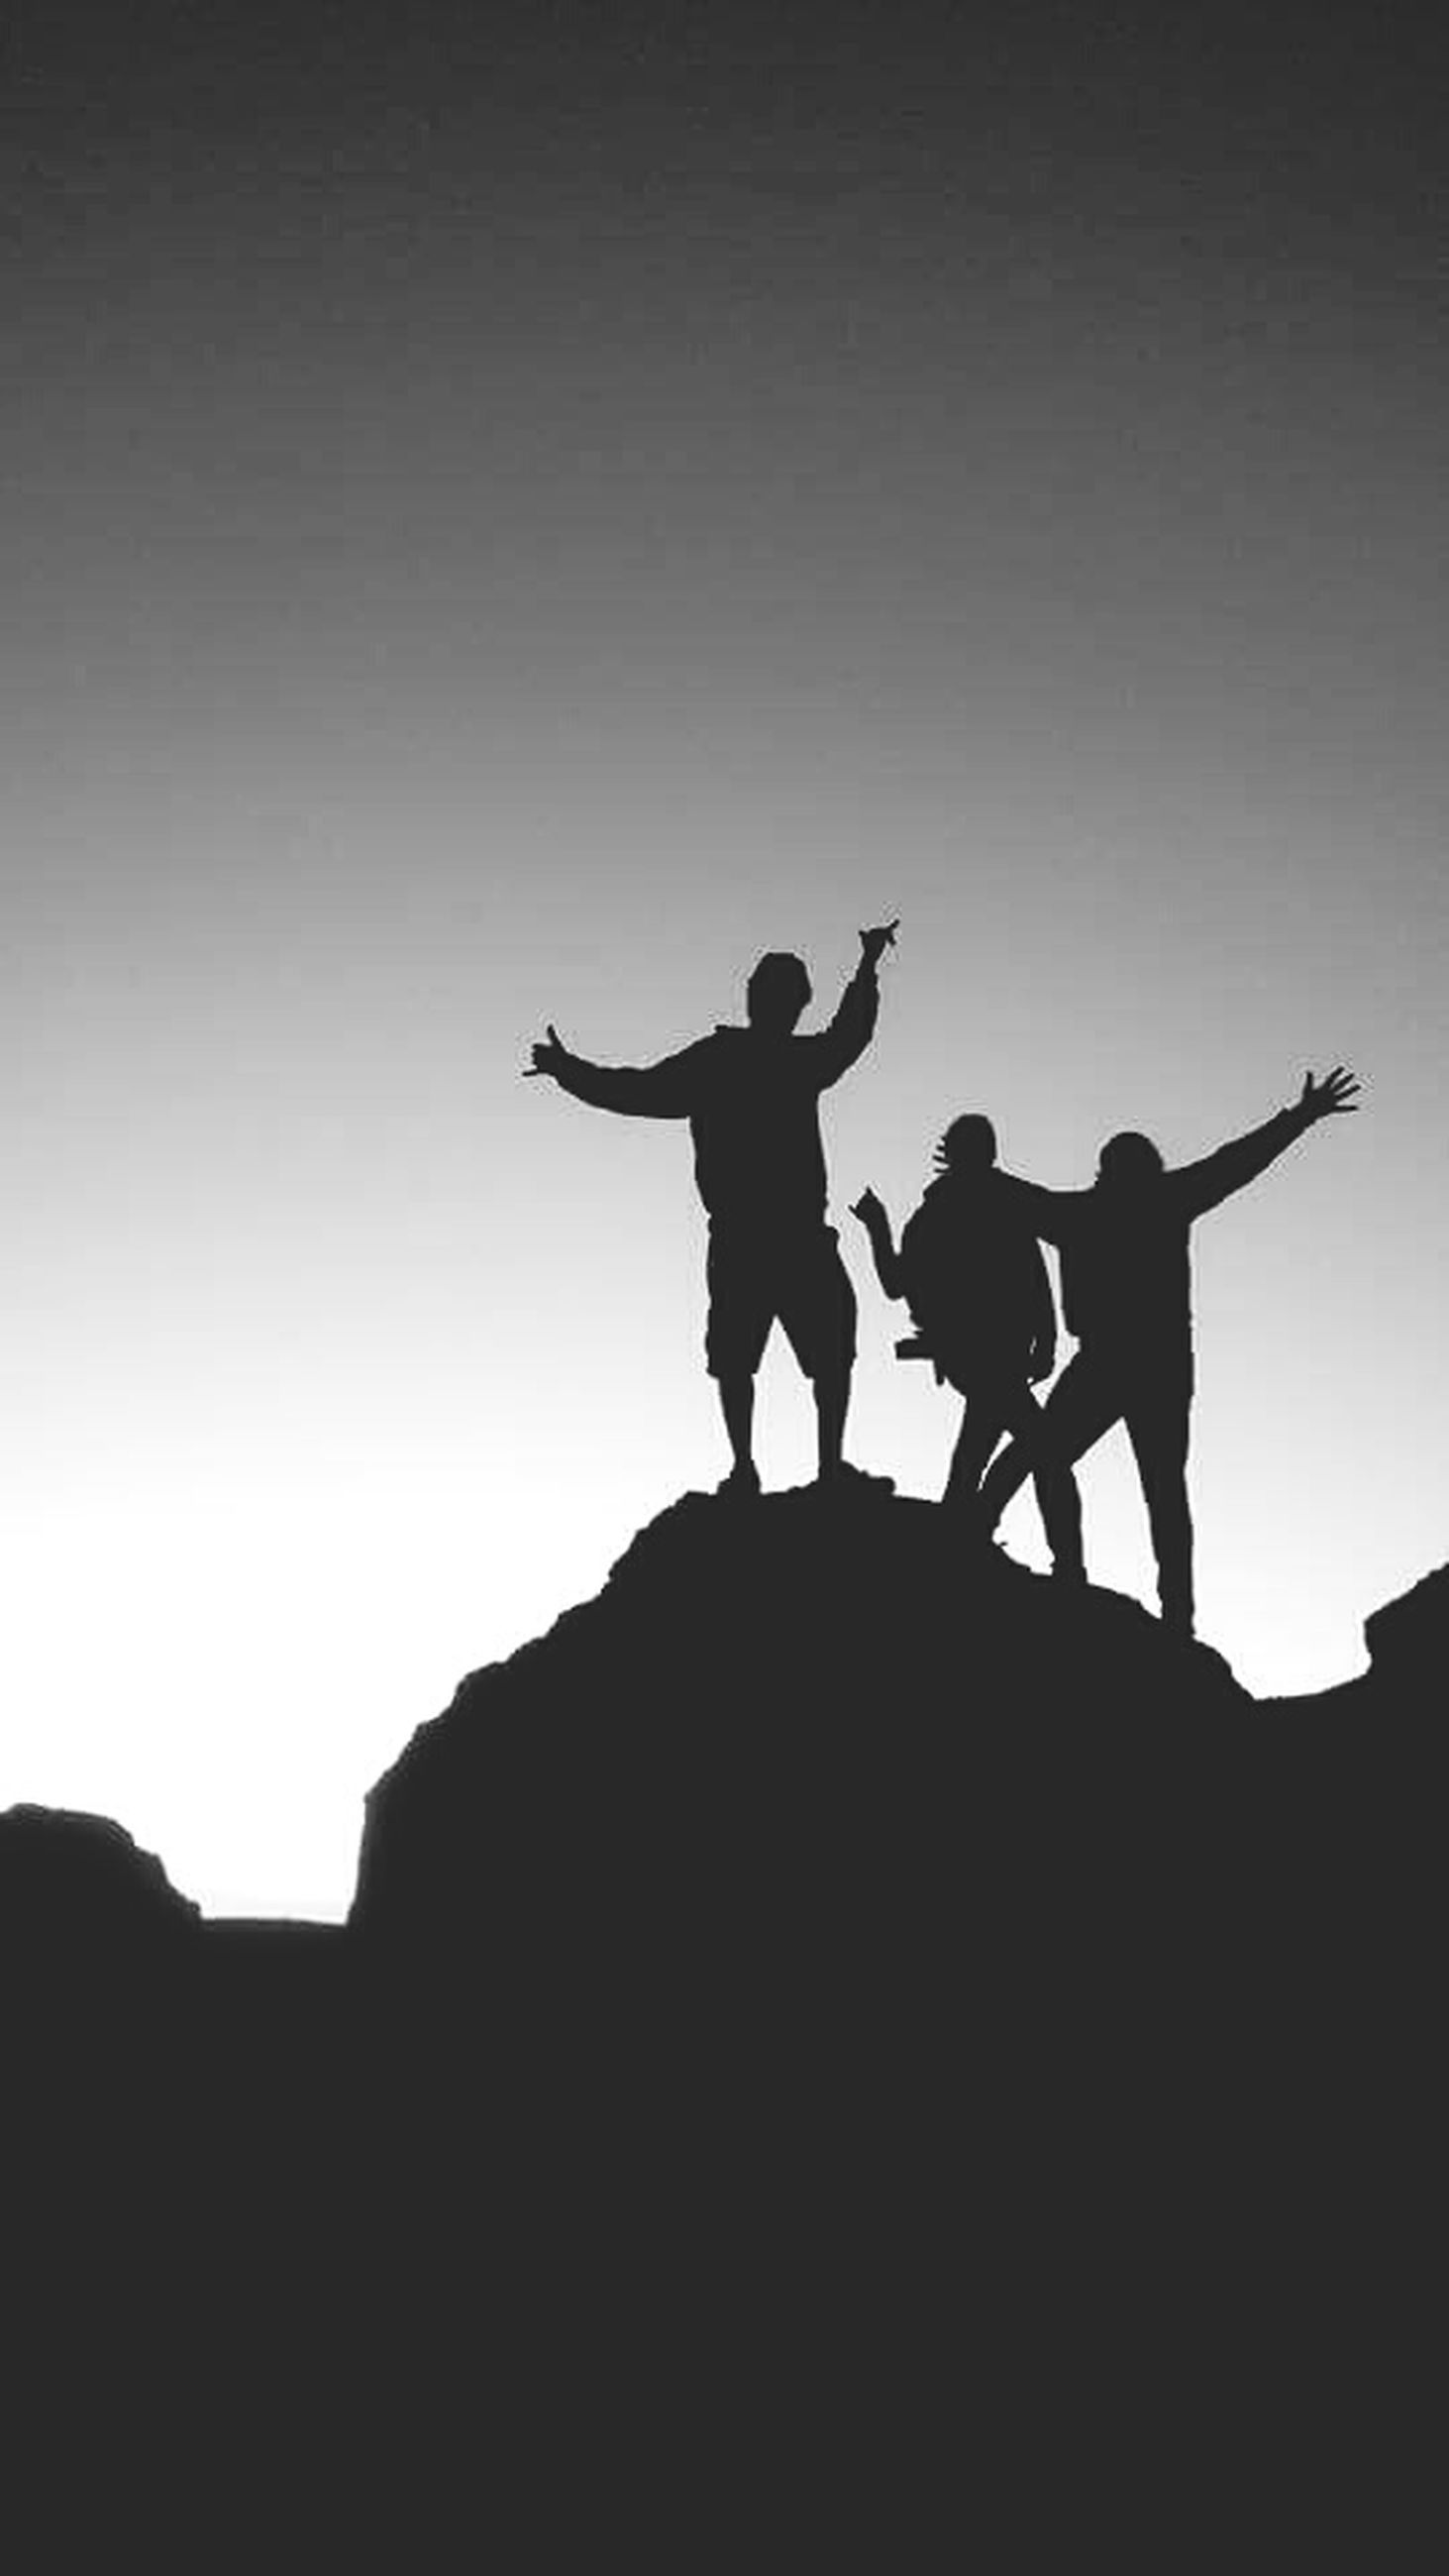 silhouette, low angle view, men, lifestyles, leisure activity, copy space, clear sky, full length, togetherness, sunset, sky, dusk, outdoors, outline, standing, person, skill